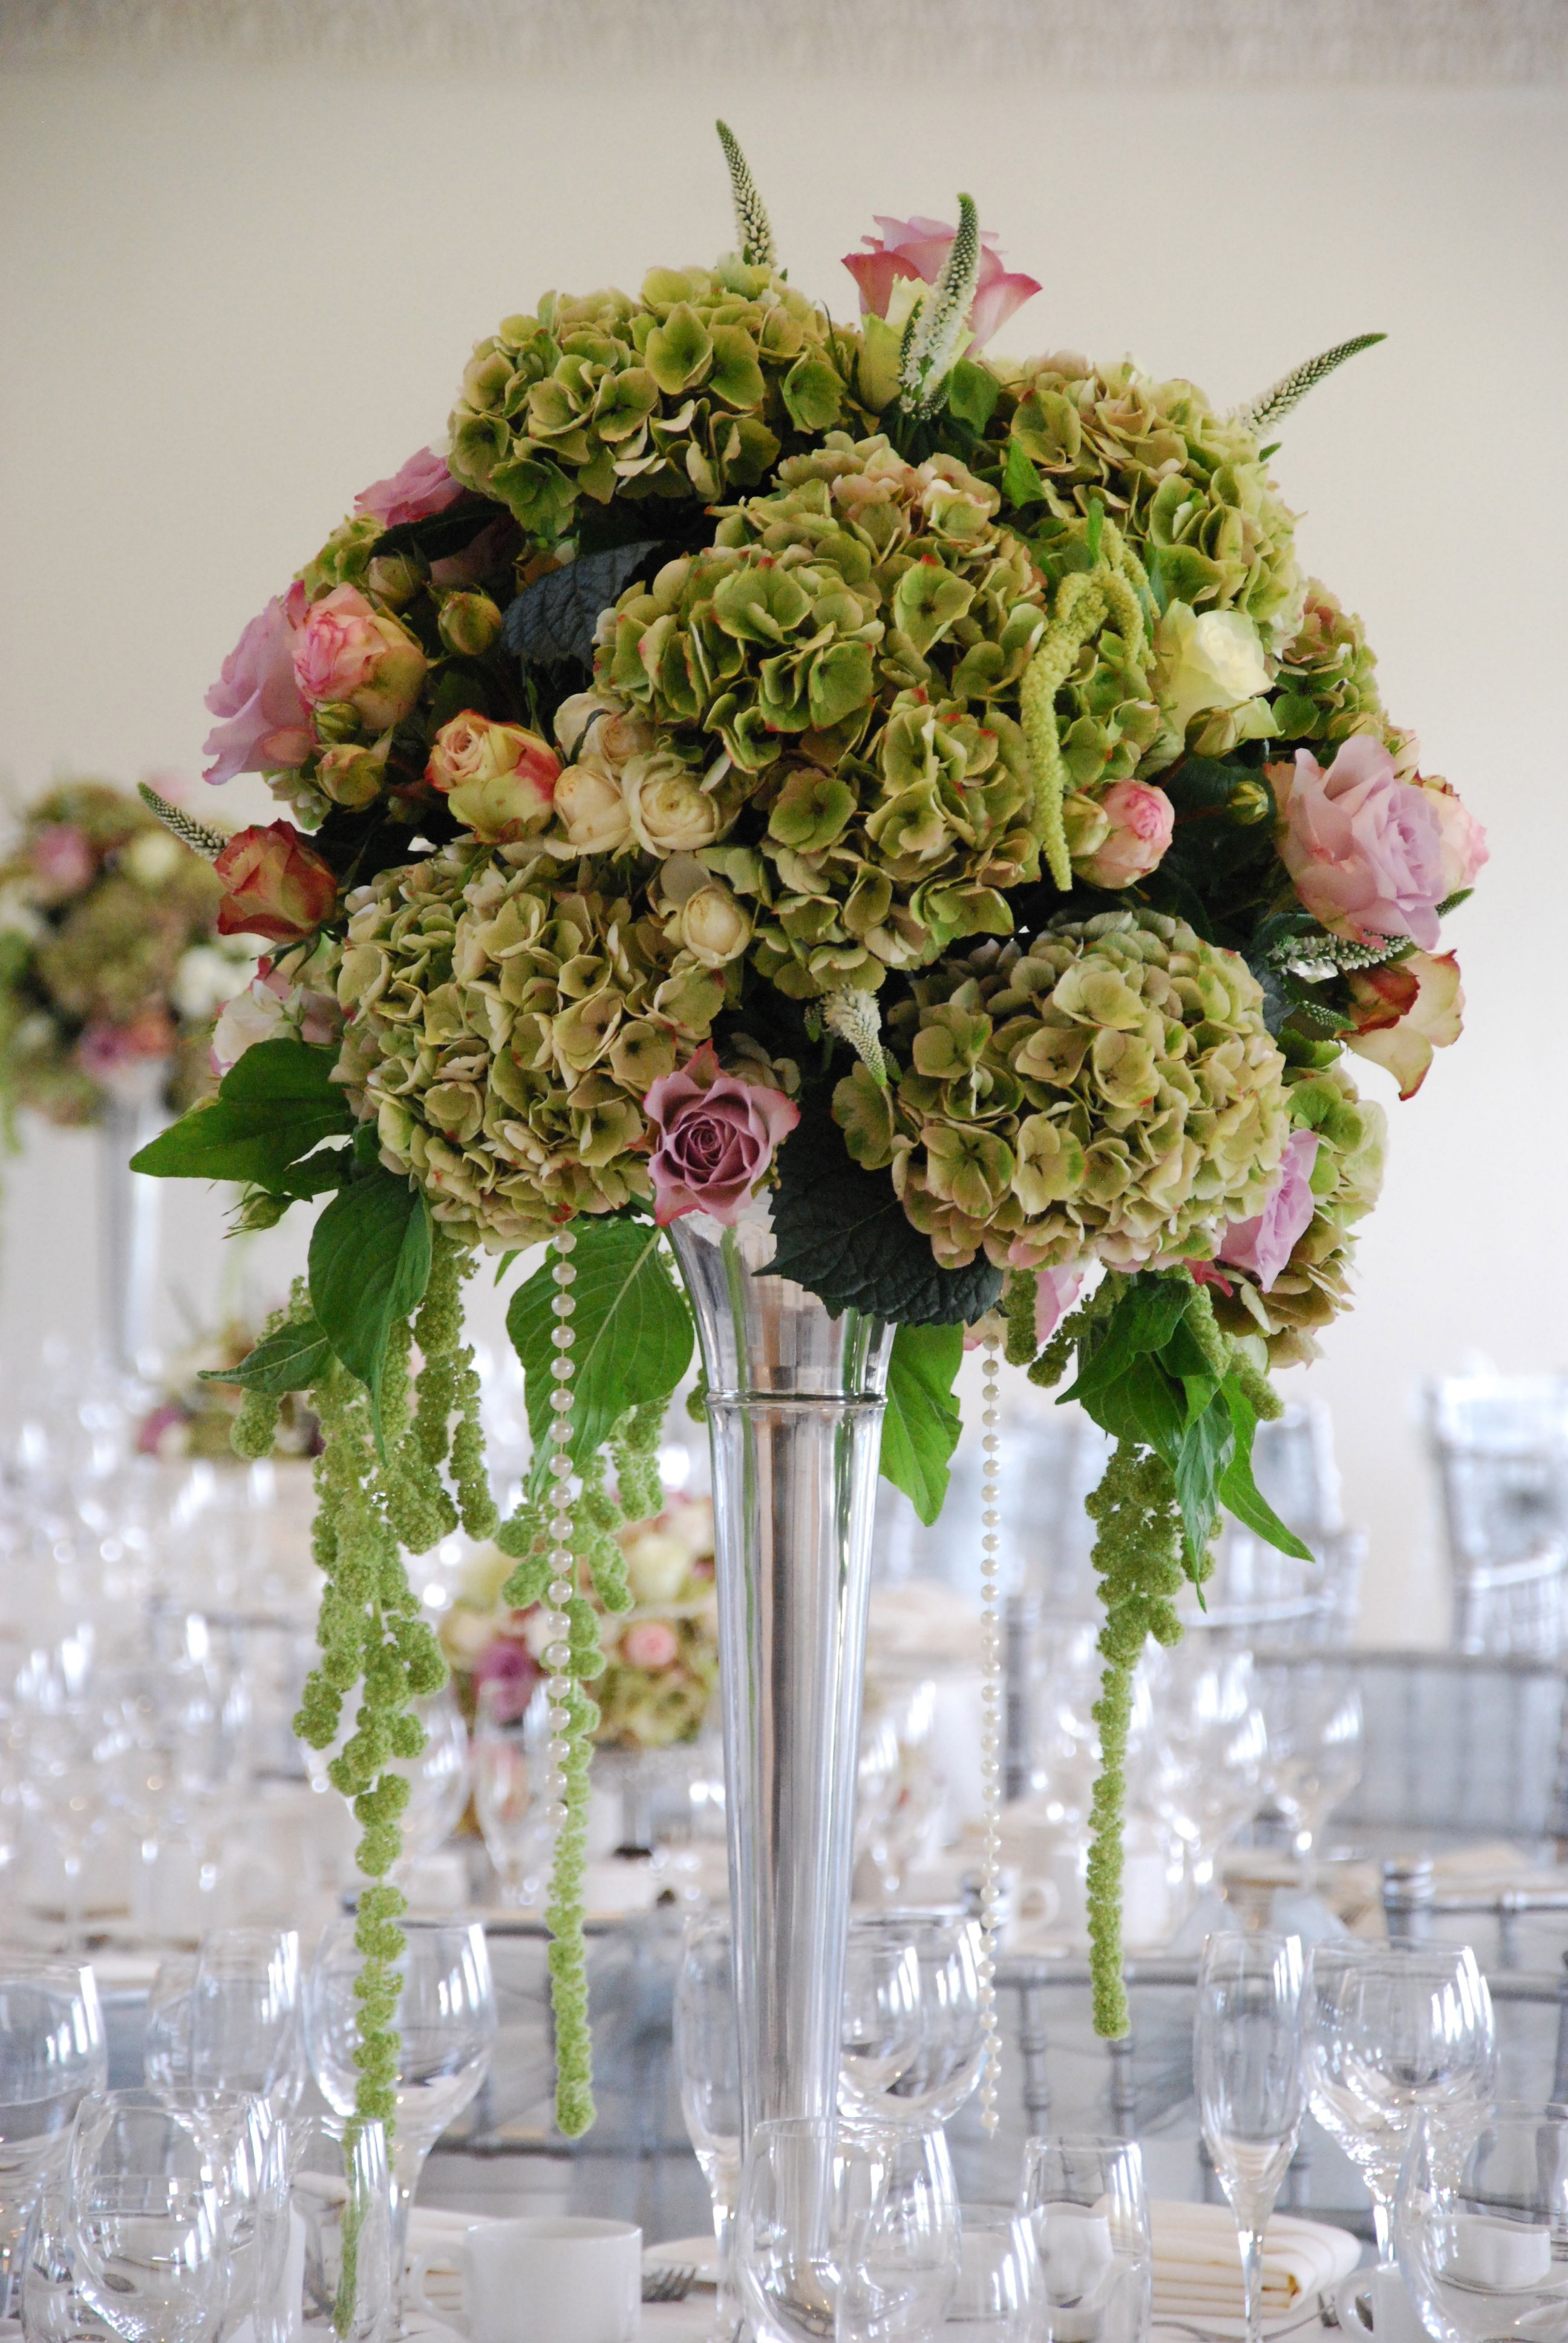 Hydrangeas, Amaranthus And Vintage Style Roses, Glamorous Wedding Table Centre